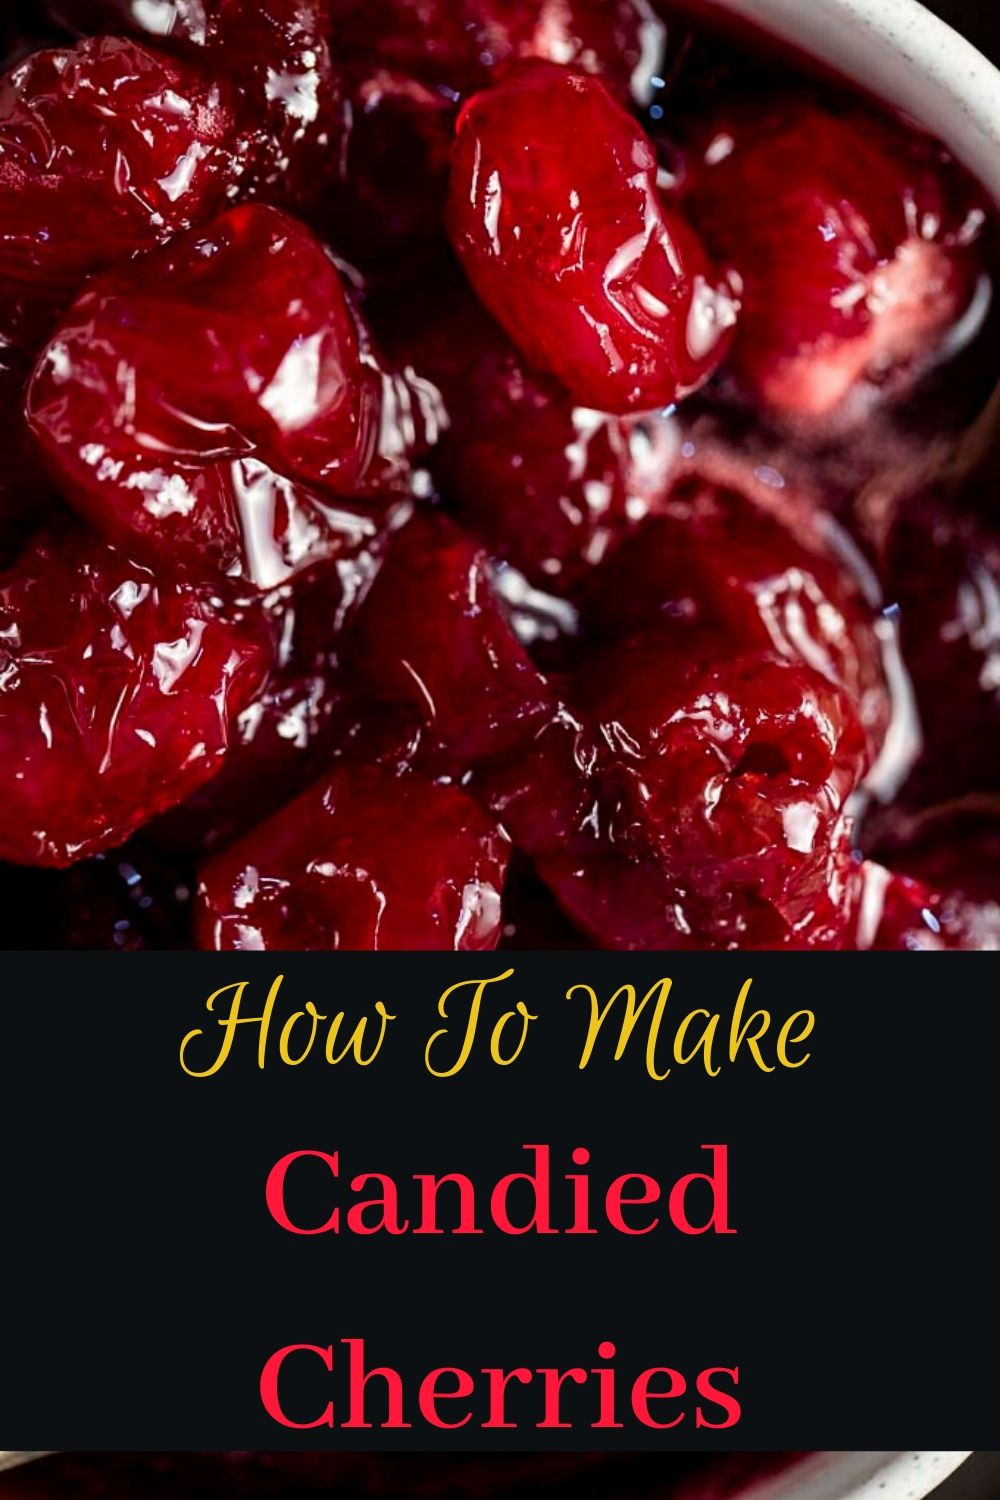 How to Make Candied Cherries